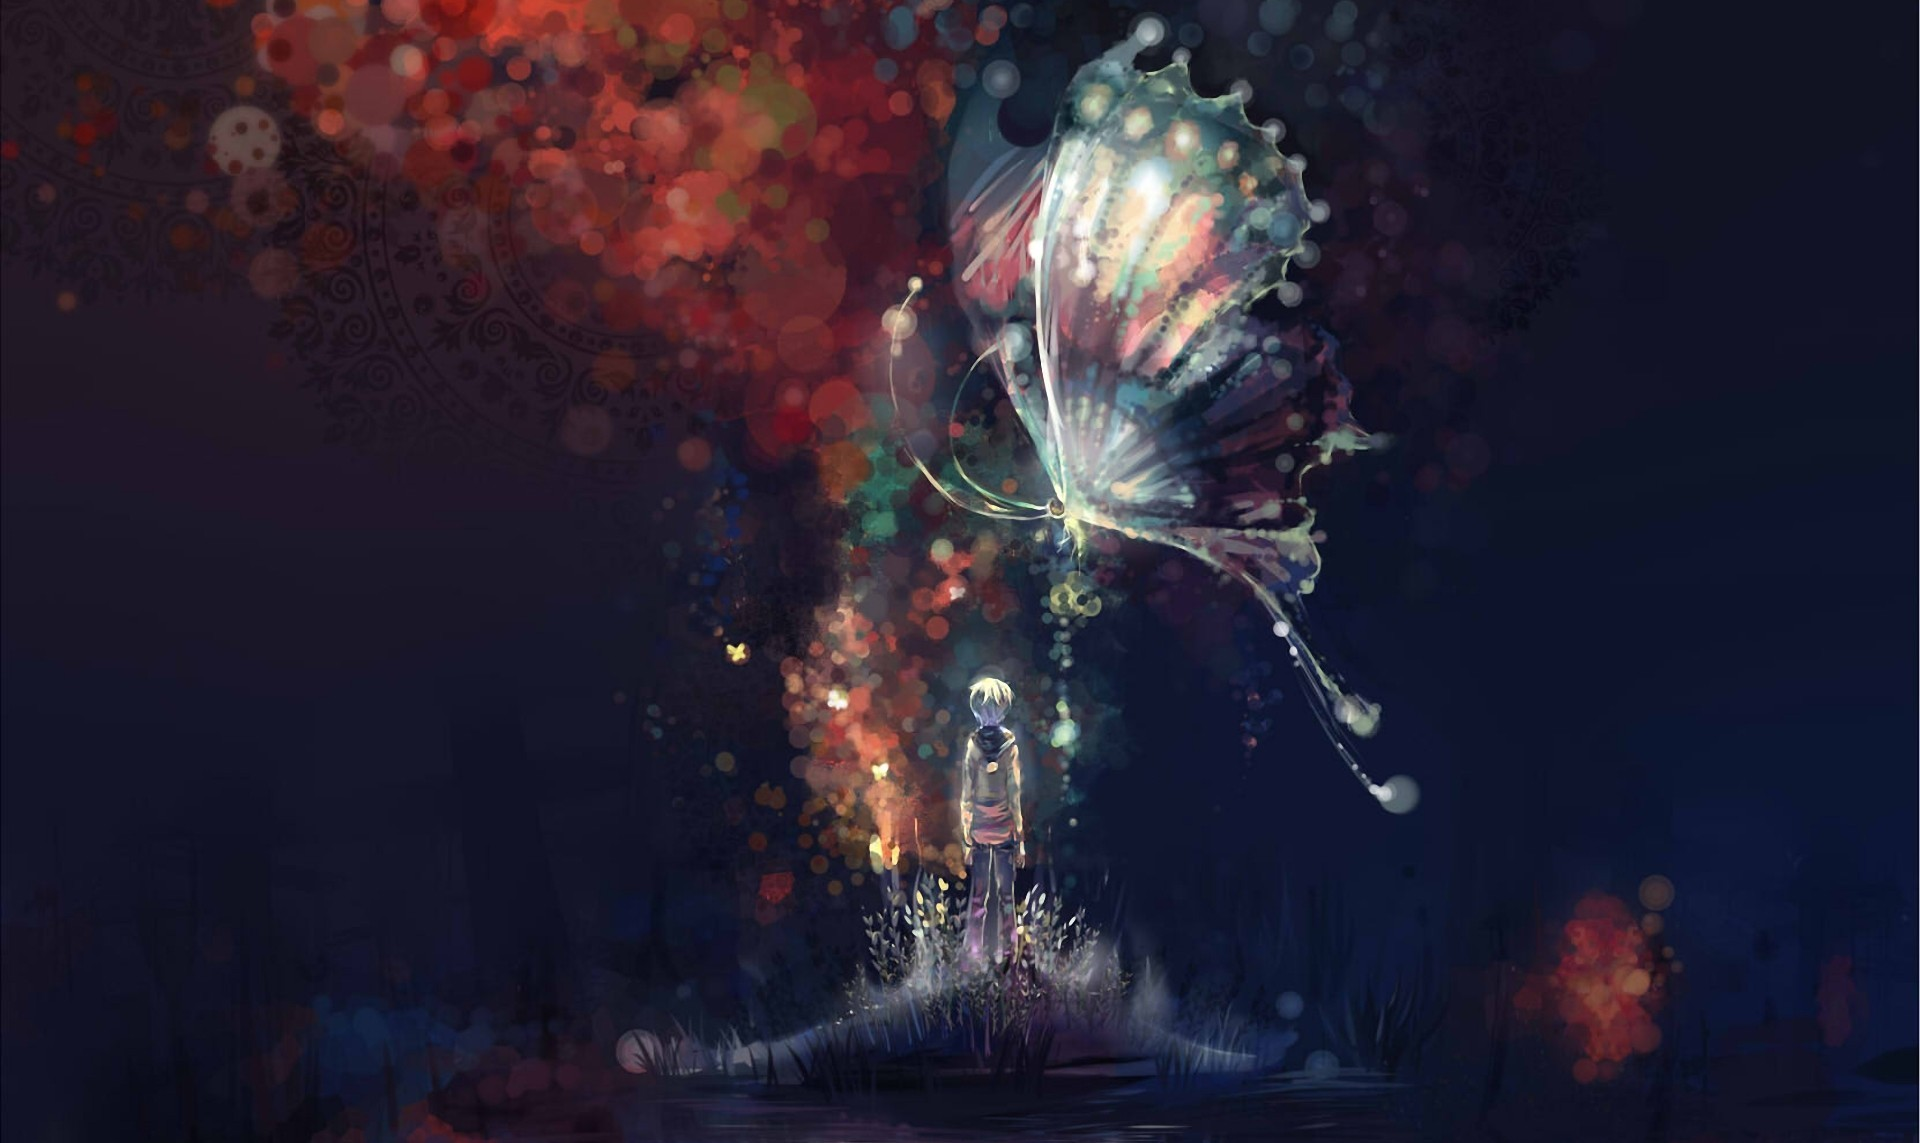 art Night Abstract Butterfly Boy Island Water Lake Anime 1920x1143